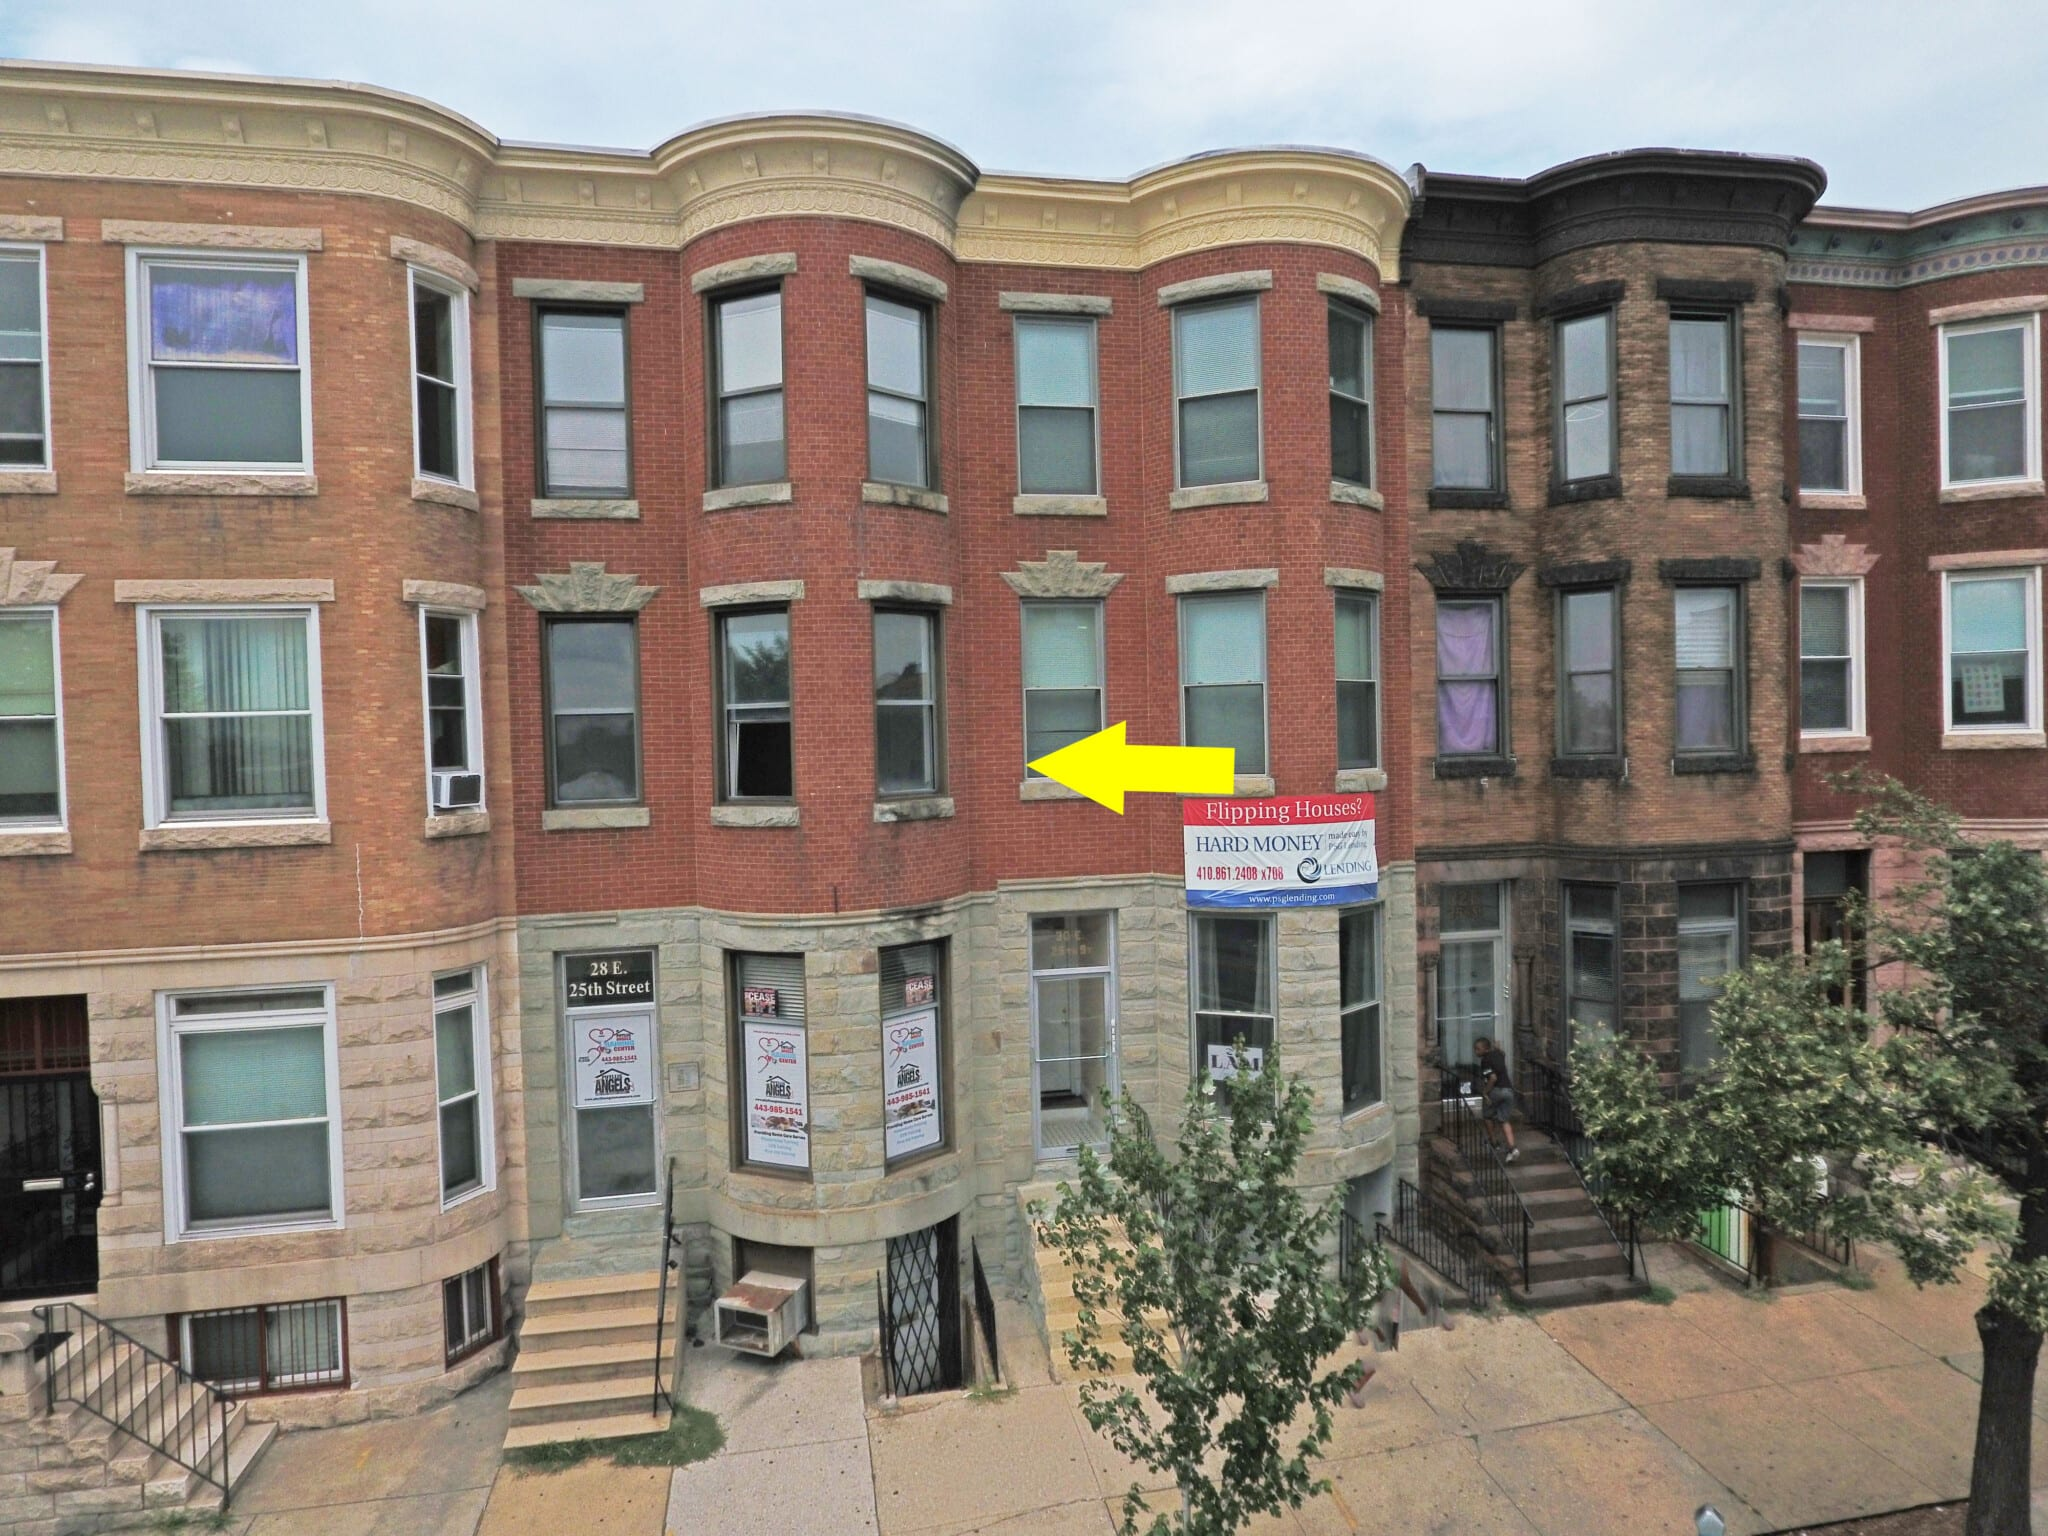 28 East 25th St: 2 Stores + 2 Apartments – 100% Leased in Charles Village